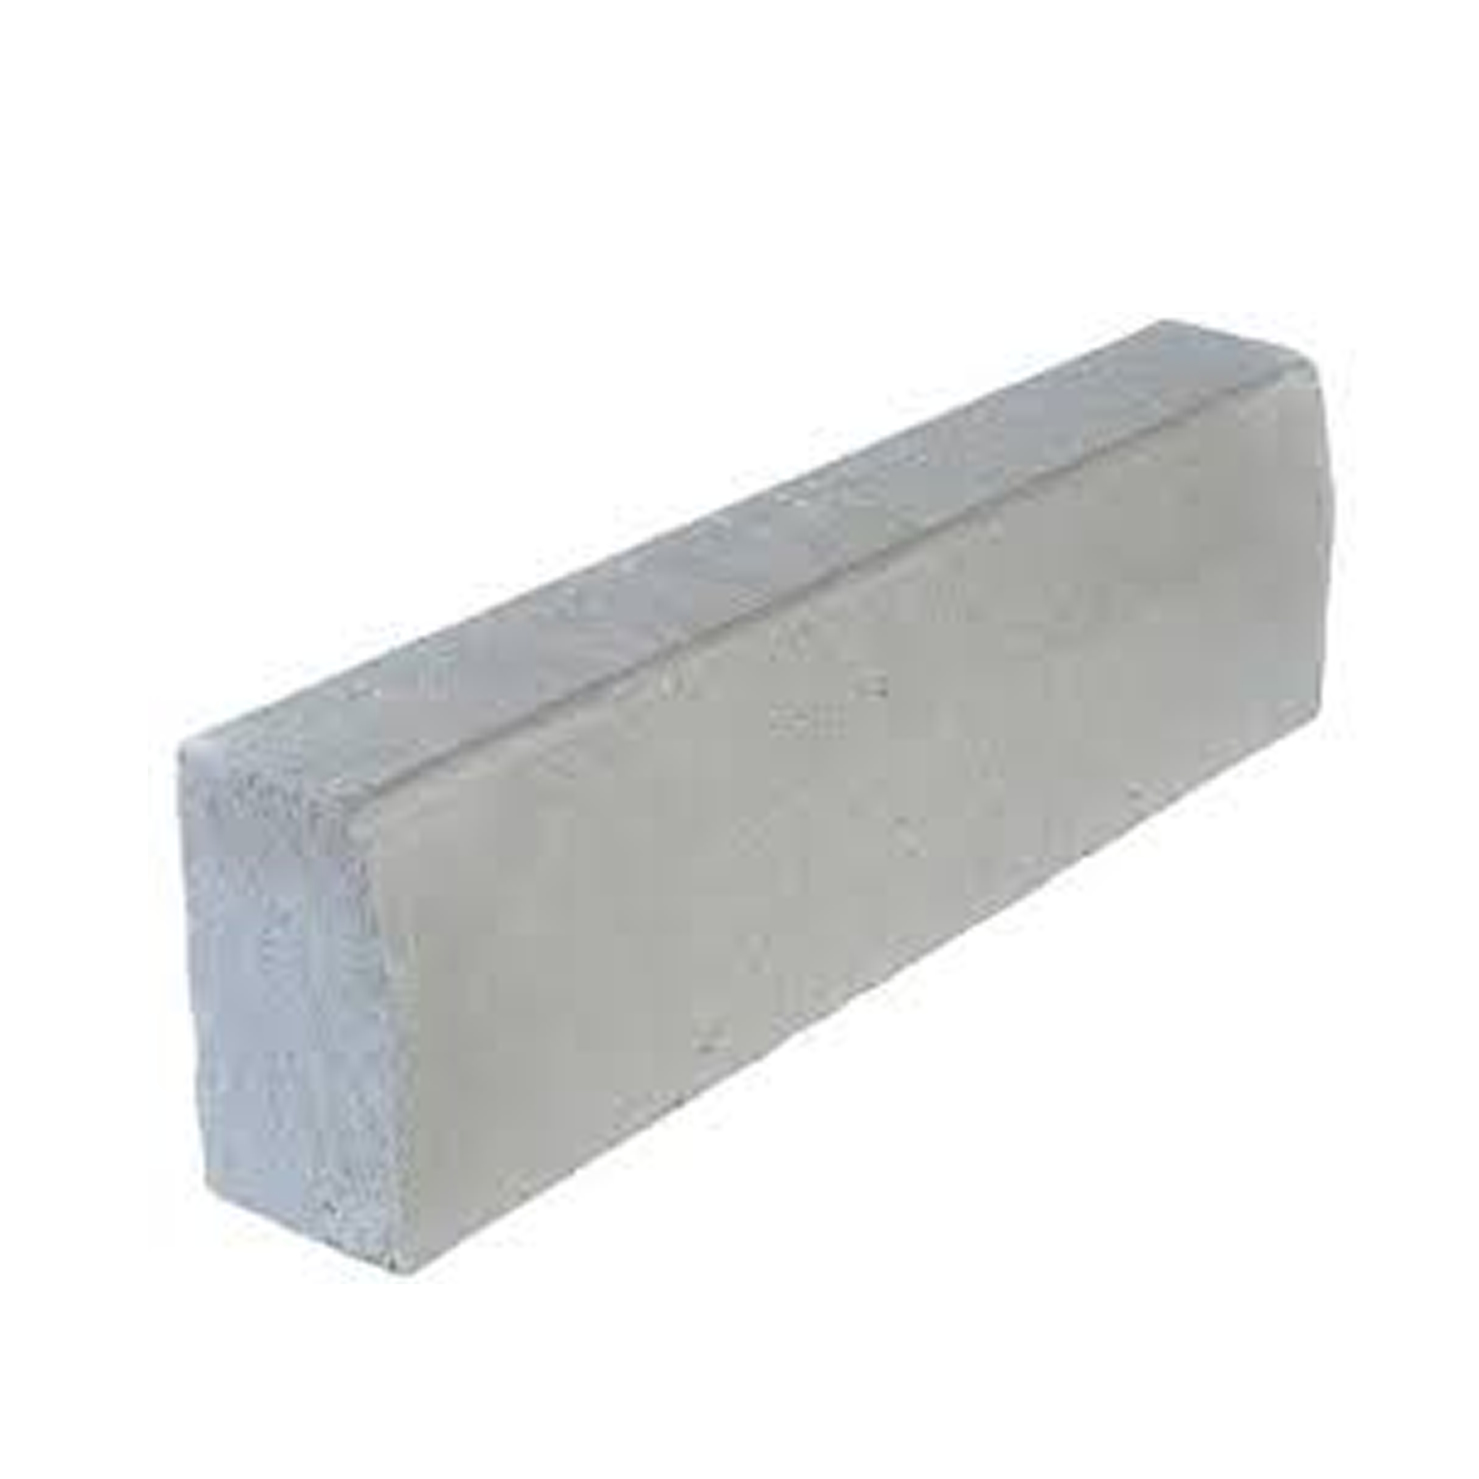 Master Industries Uganda Ltd Machine Kerbs